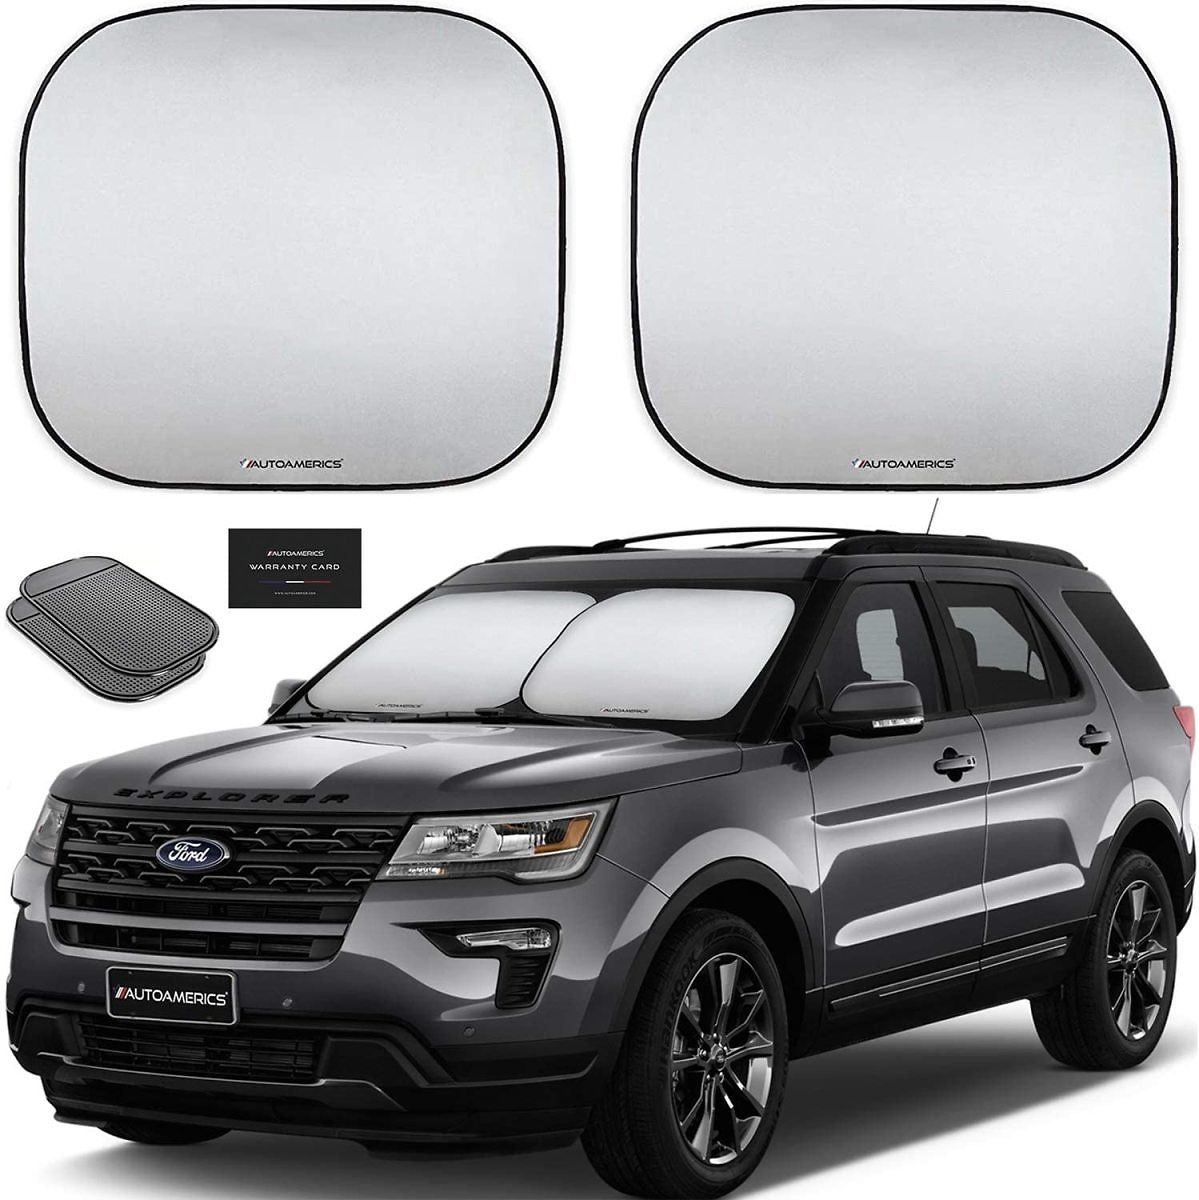 Autoamerics Windshield Sun Shade 2-Piece Foldable Car Front Window Sunshade for Most Sedans SUV Truck